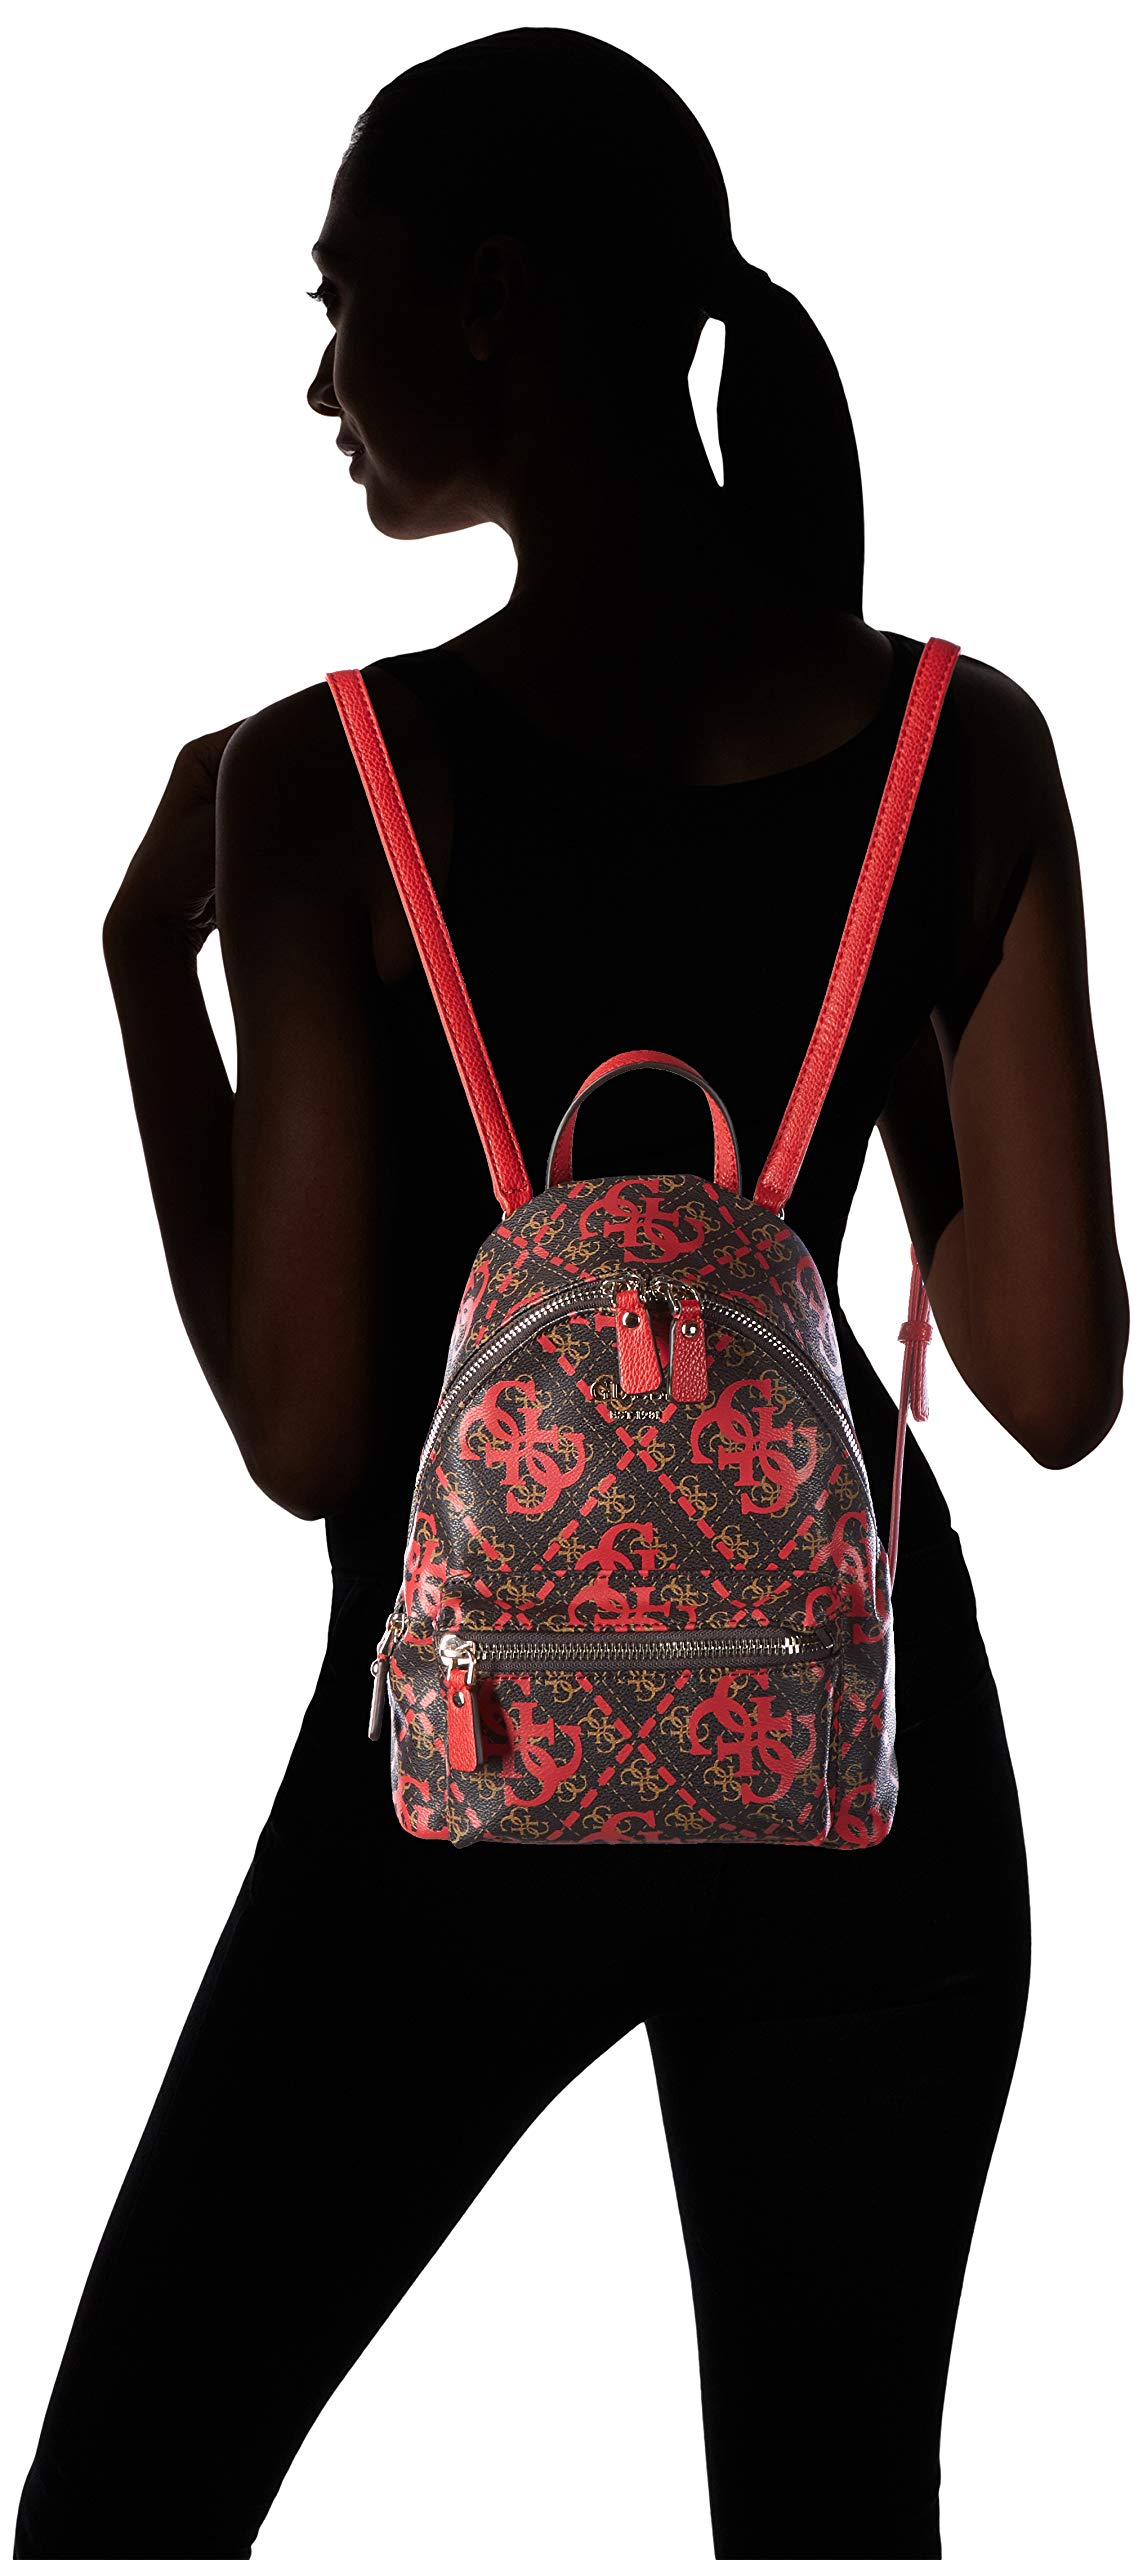 71O94w7ouLL - Guess - Leeza Backpack, Mujer, Multicolor (Red Multi), 22x29x10.5 cm (W x H L)